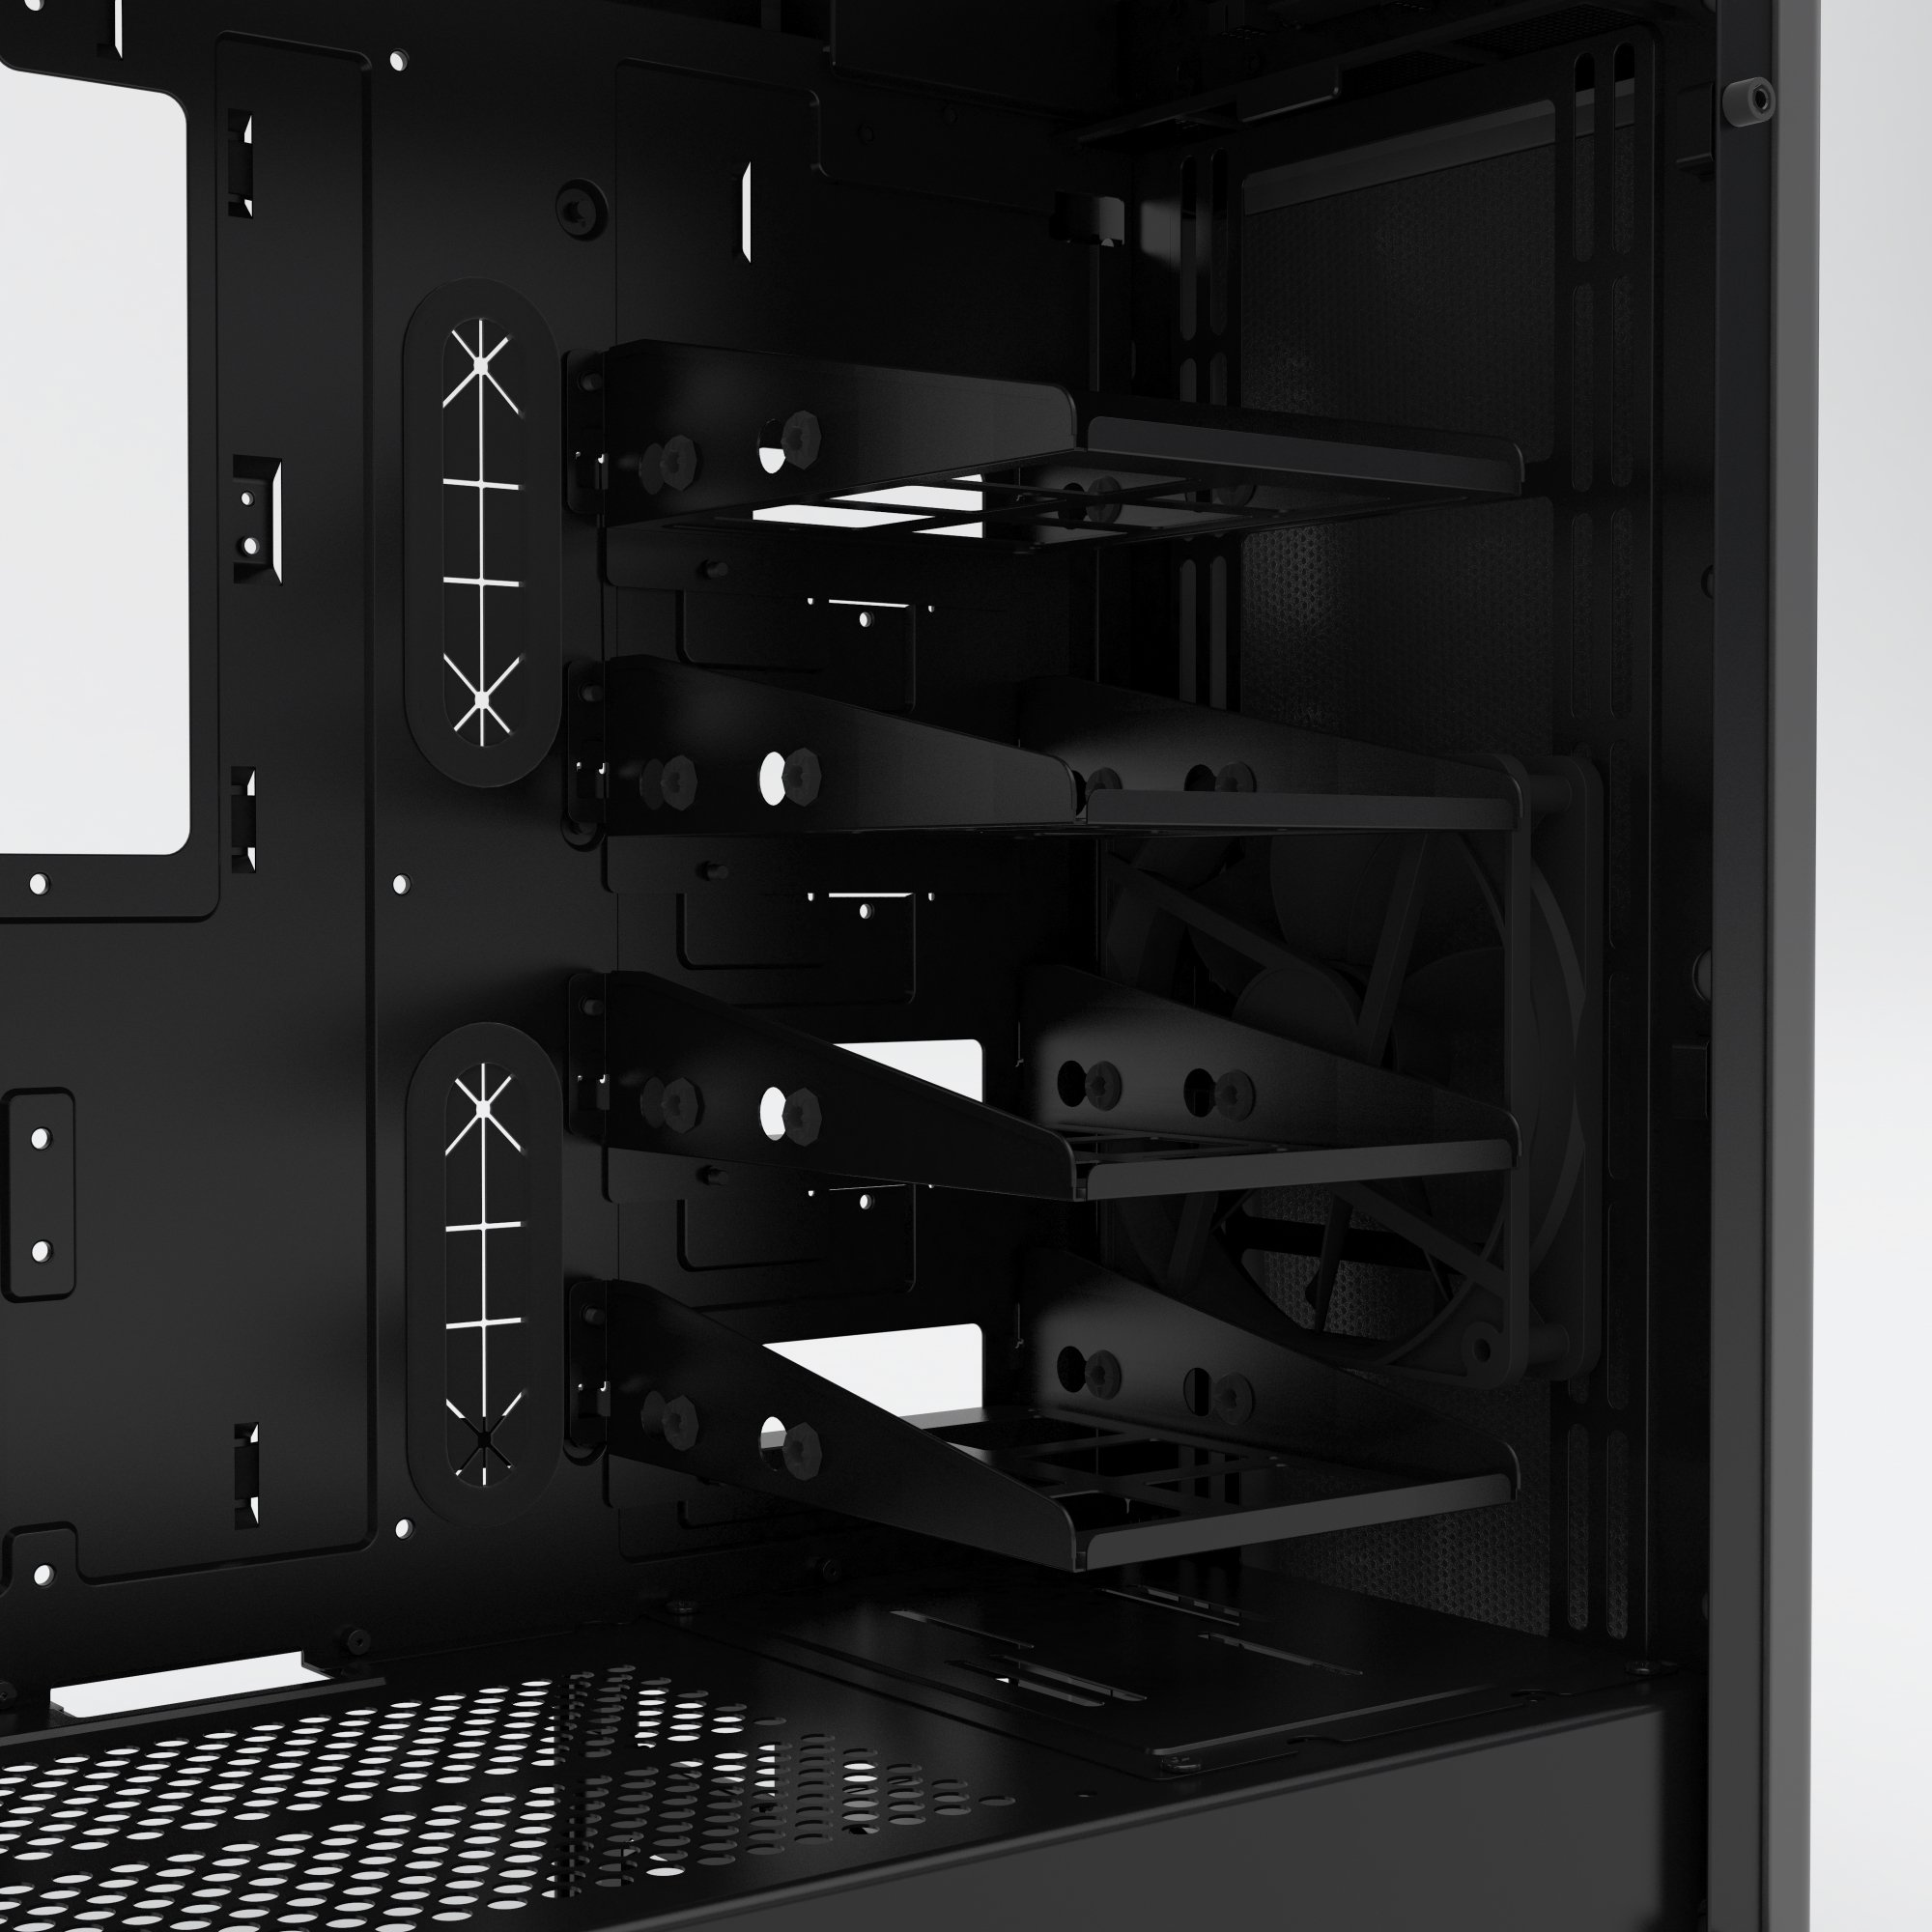 Phanteks PH-EC416PSTG_AG Eclipse P400S Silent Edition with Tempered Glass, Anthracite Grey Cases by Phanteks (Image #12)